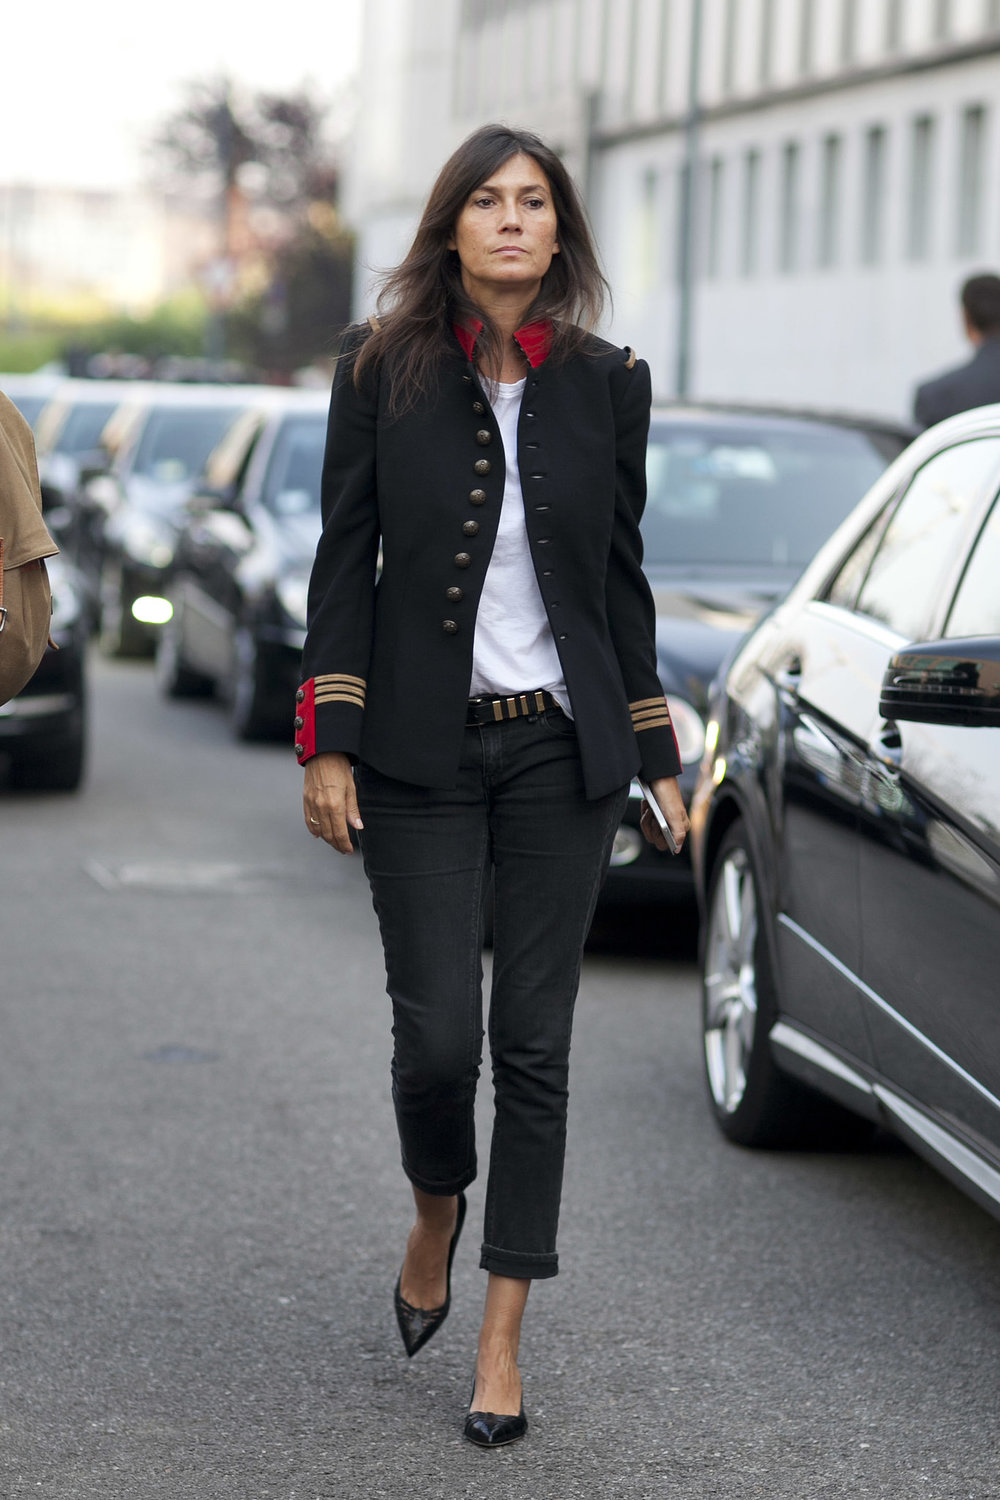 Emmanuelle-Alt-military-inspired-jacket-made-perfect.jpg